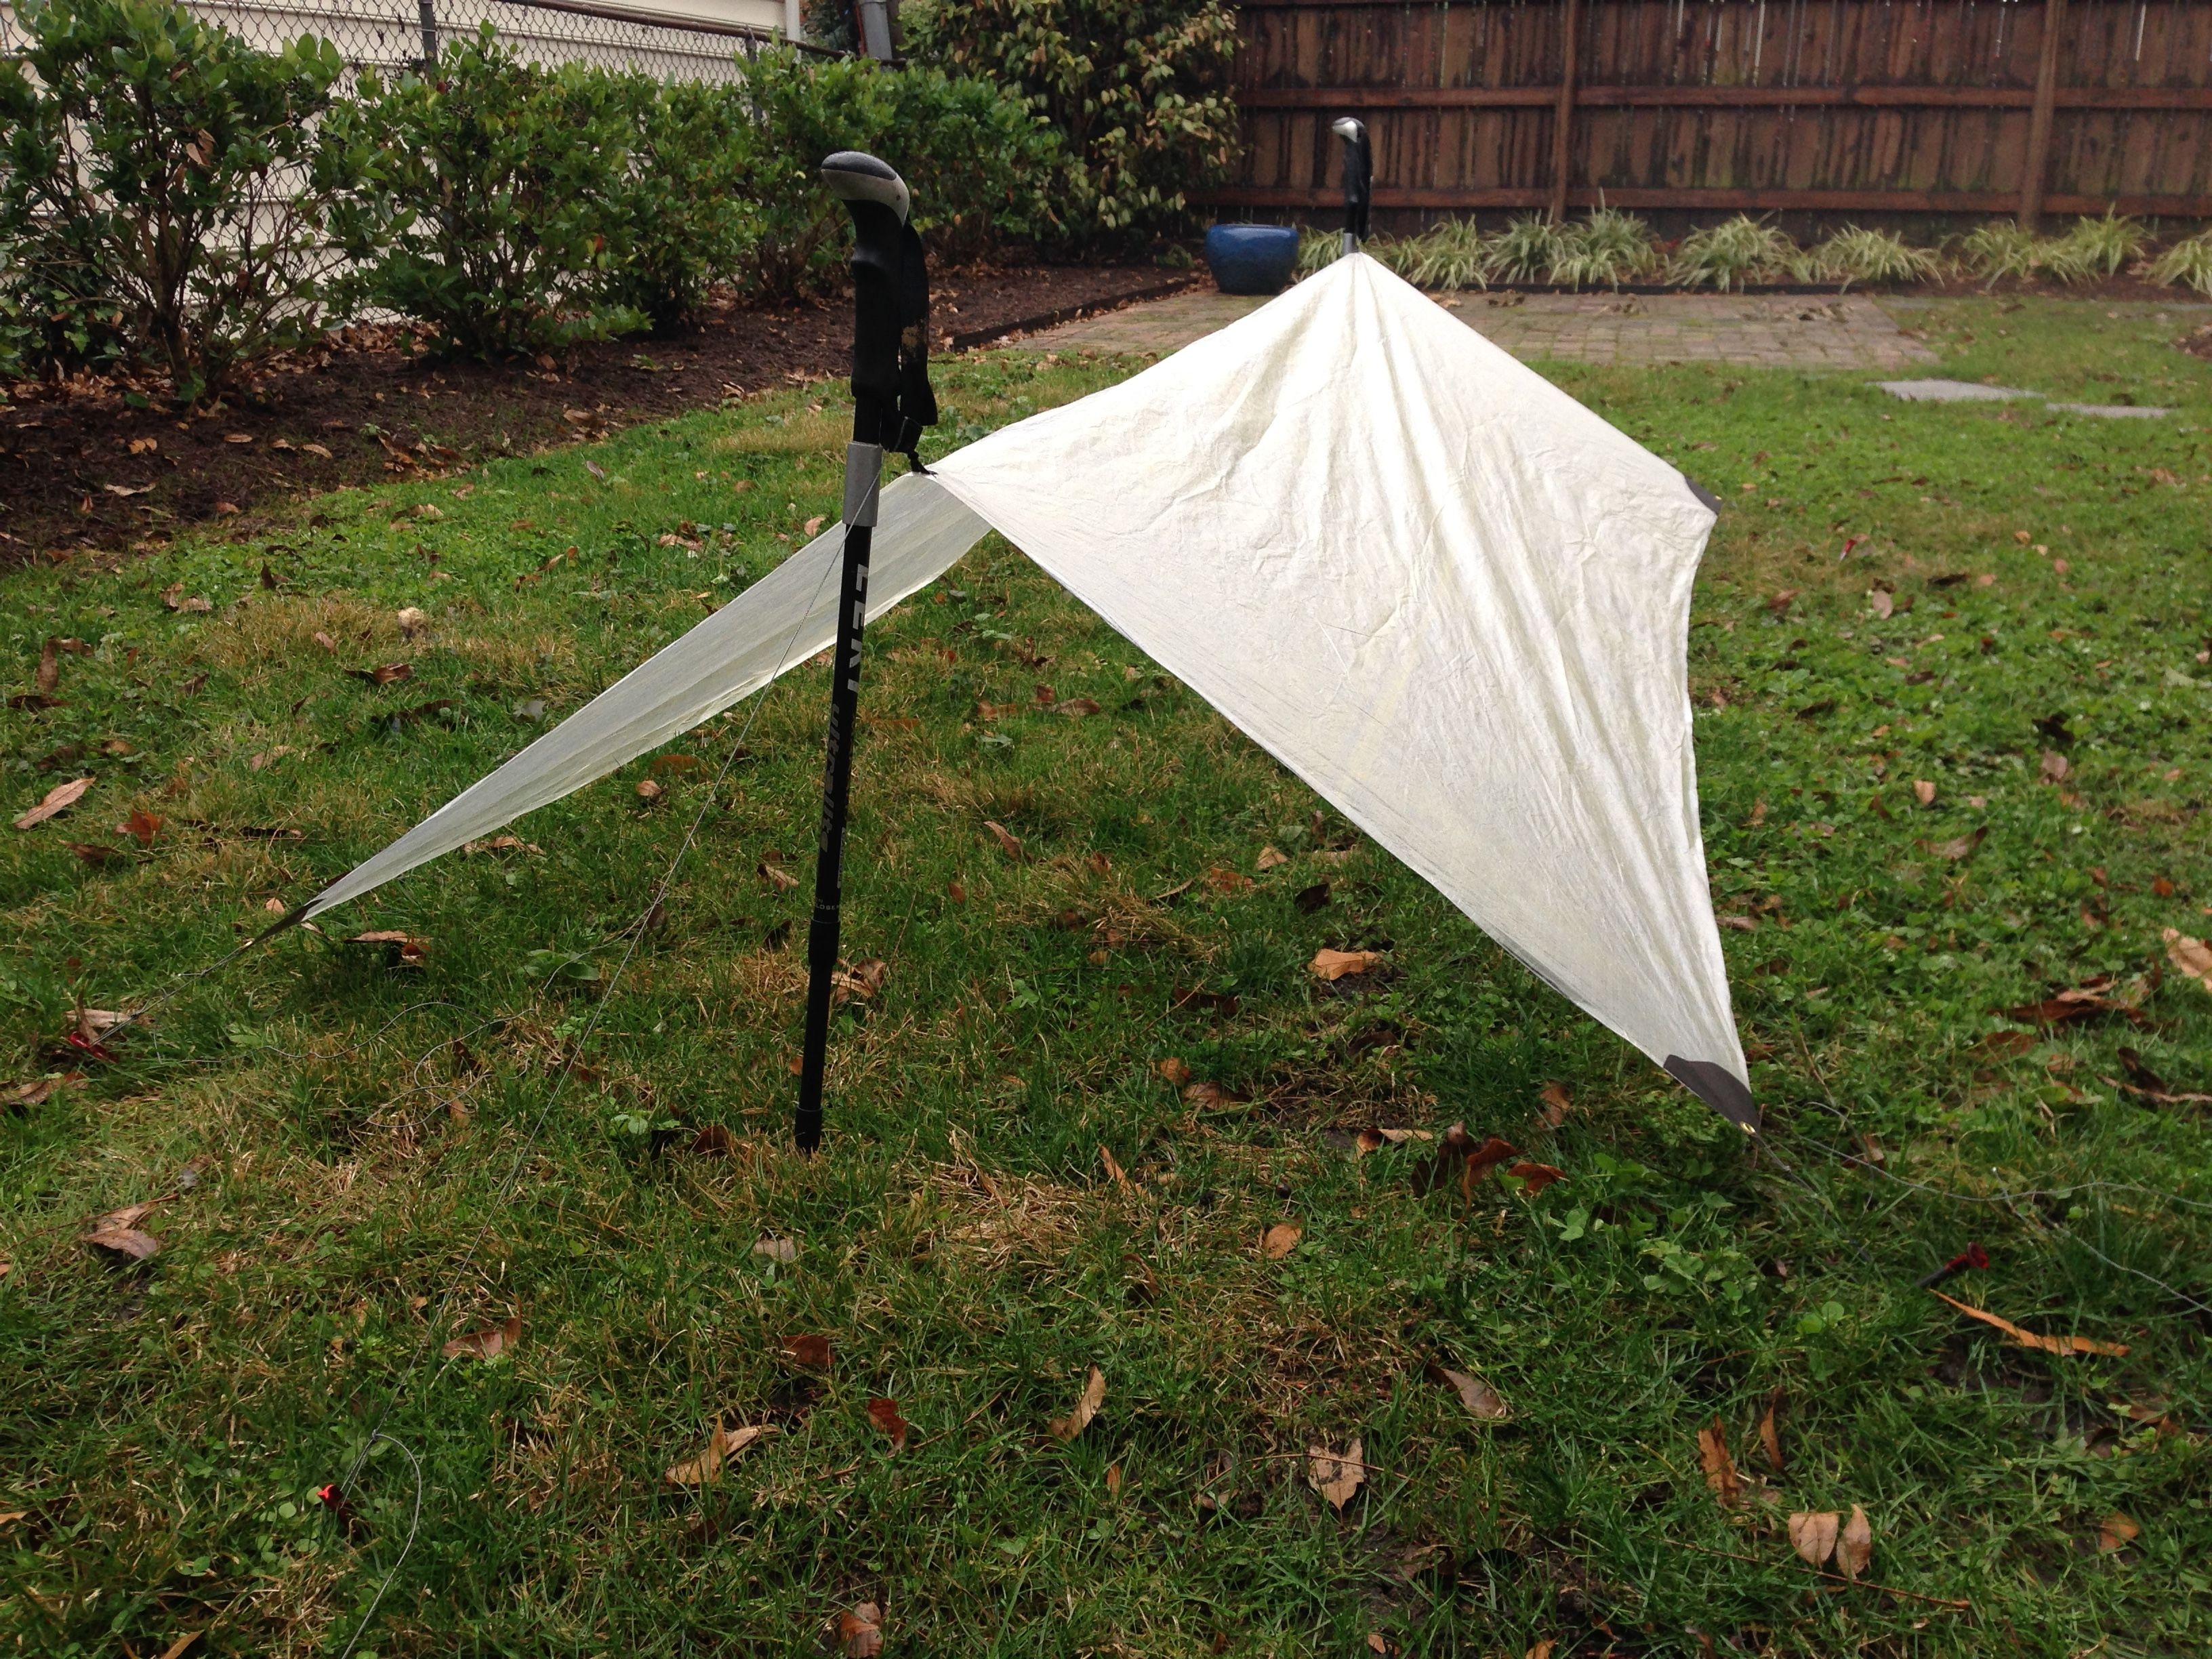 Diy Two Ounce Tarp Because It S There Ultralight Backpacking Backpacking Ultralight Hiking